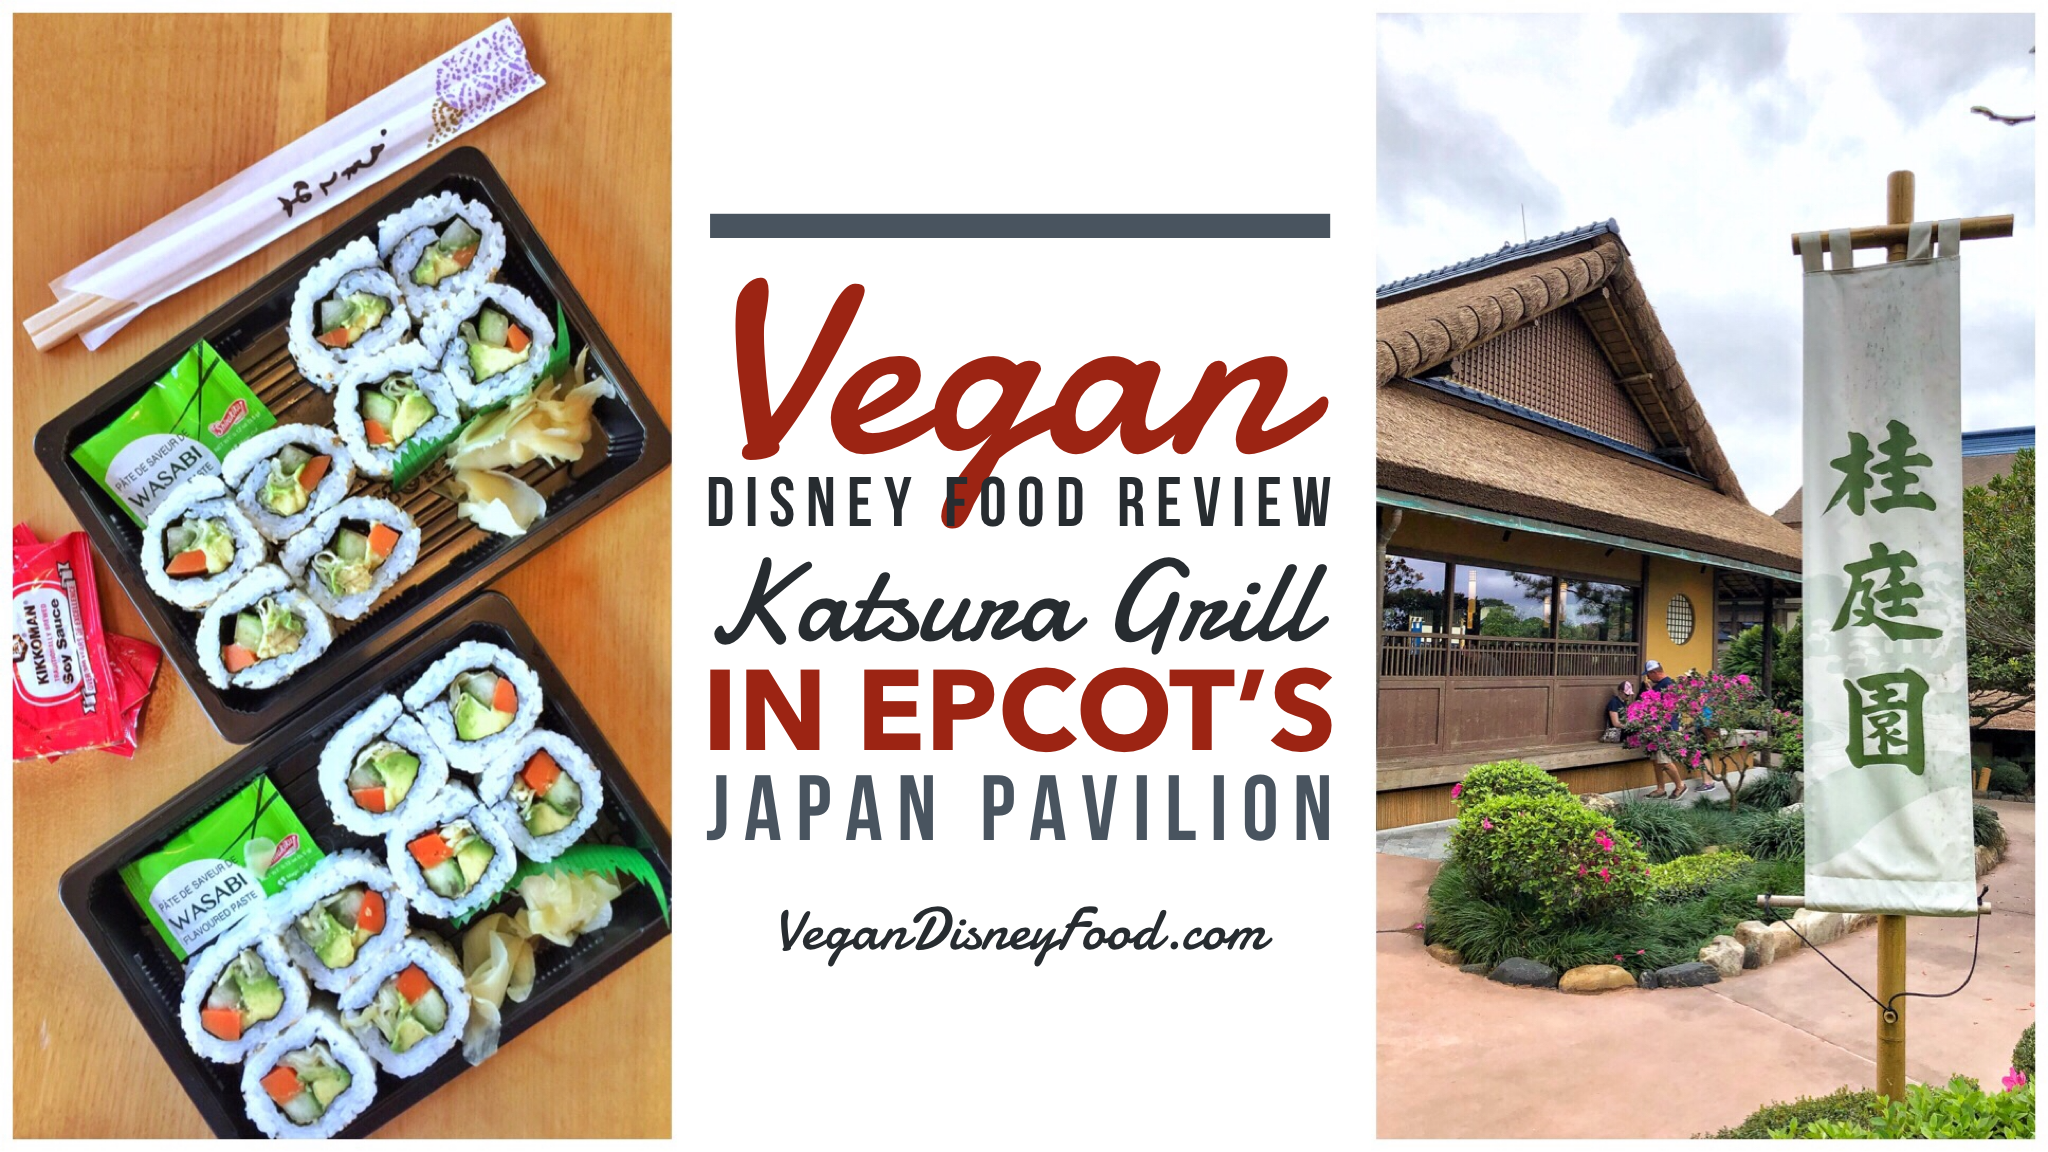 Vegan Disney Food Review: Katsura Grill in Epcot's Japan Pavilion